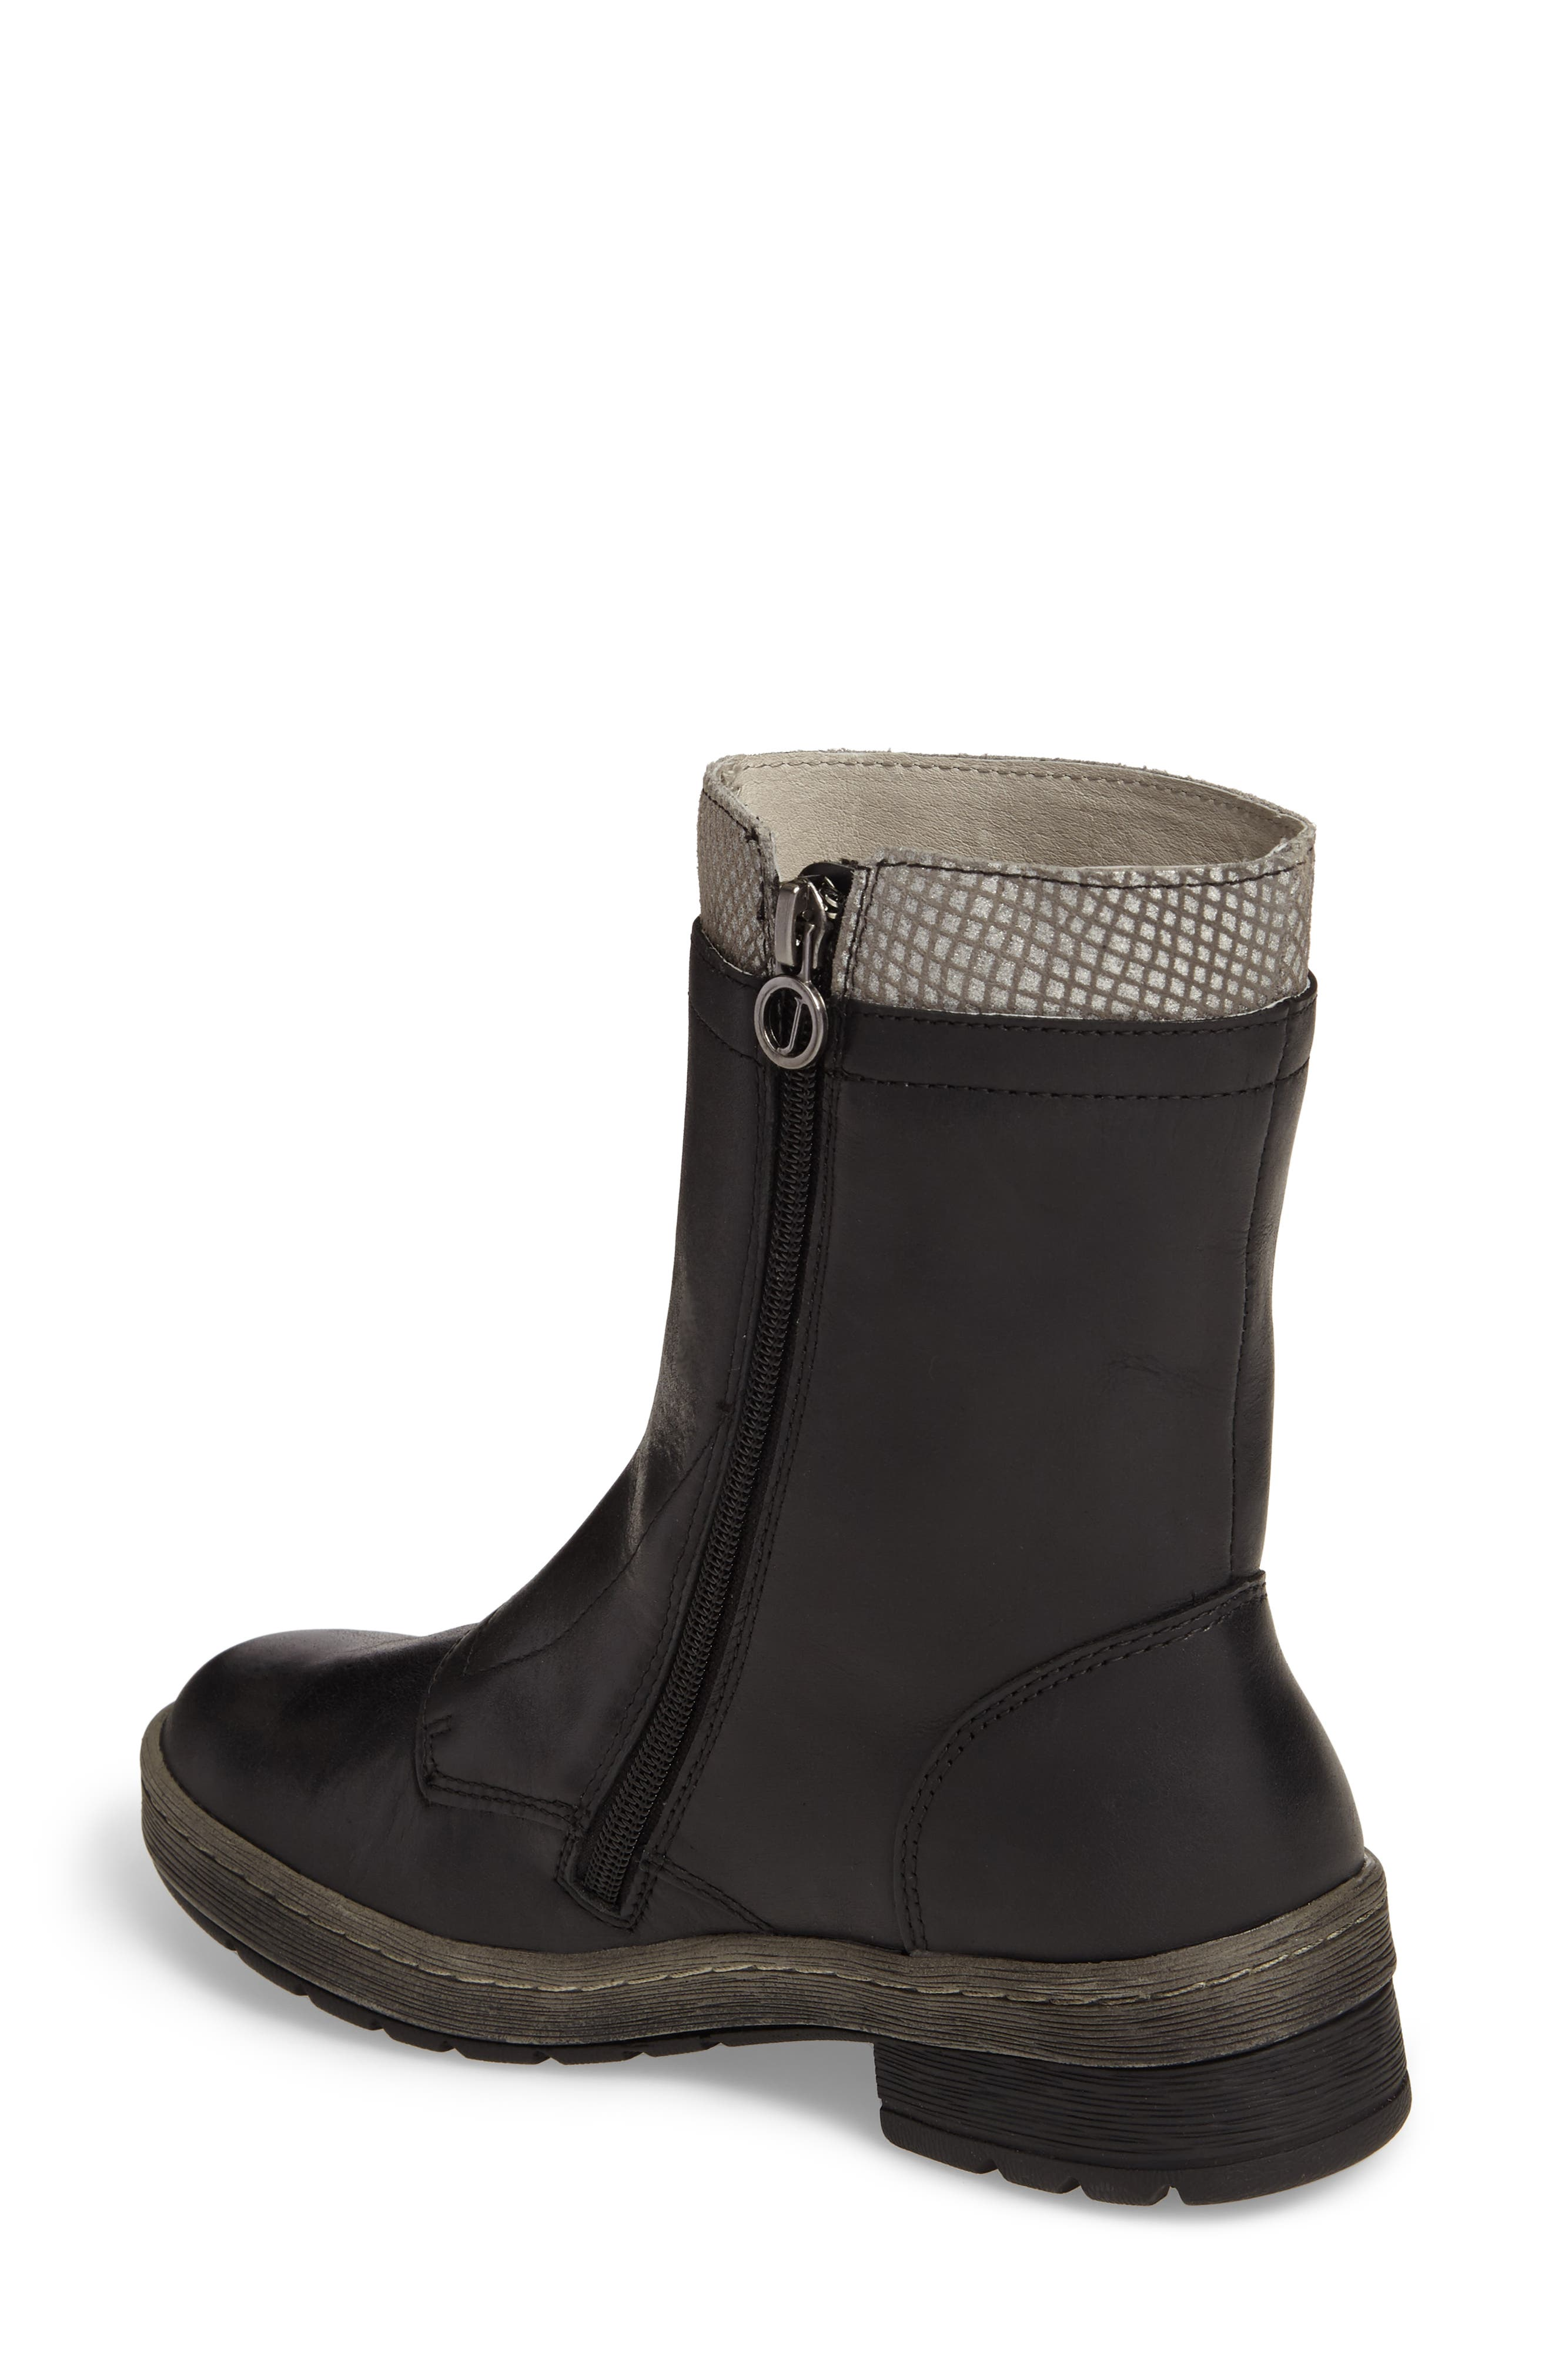 Chestnut Lace-Up Water Resistant Boot,                             Alternate thumbnail 2, color,                             001